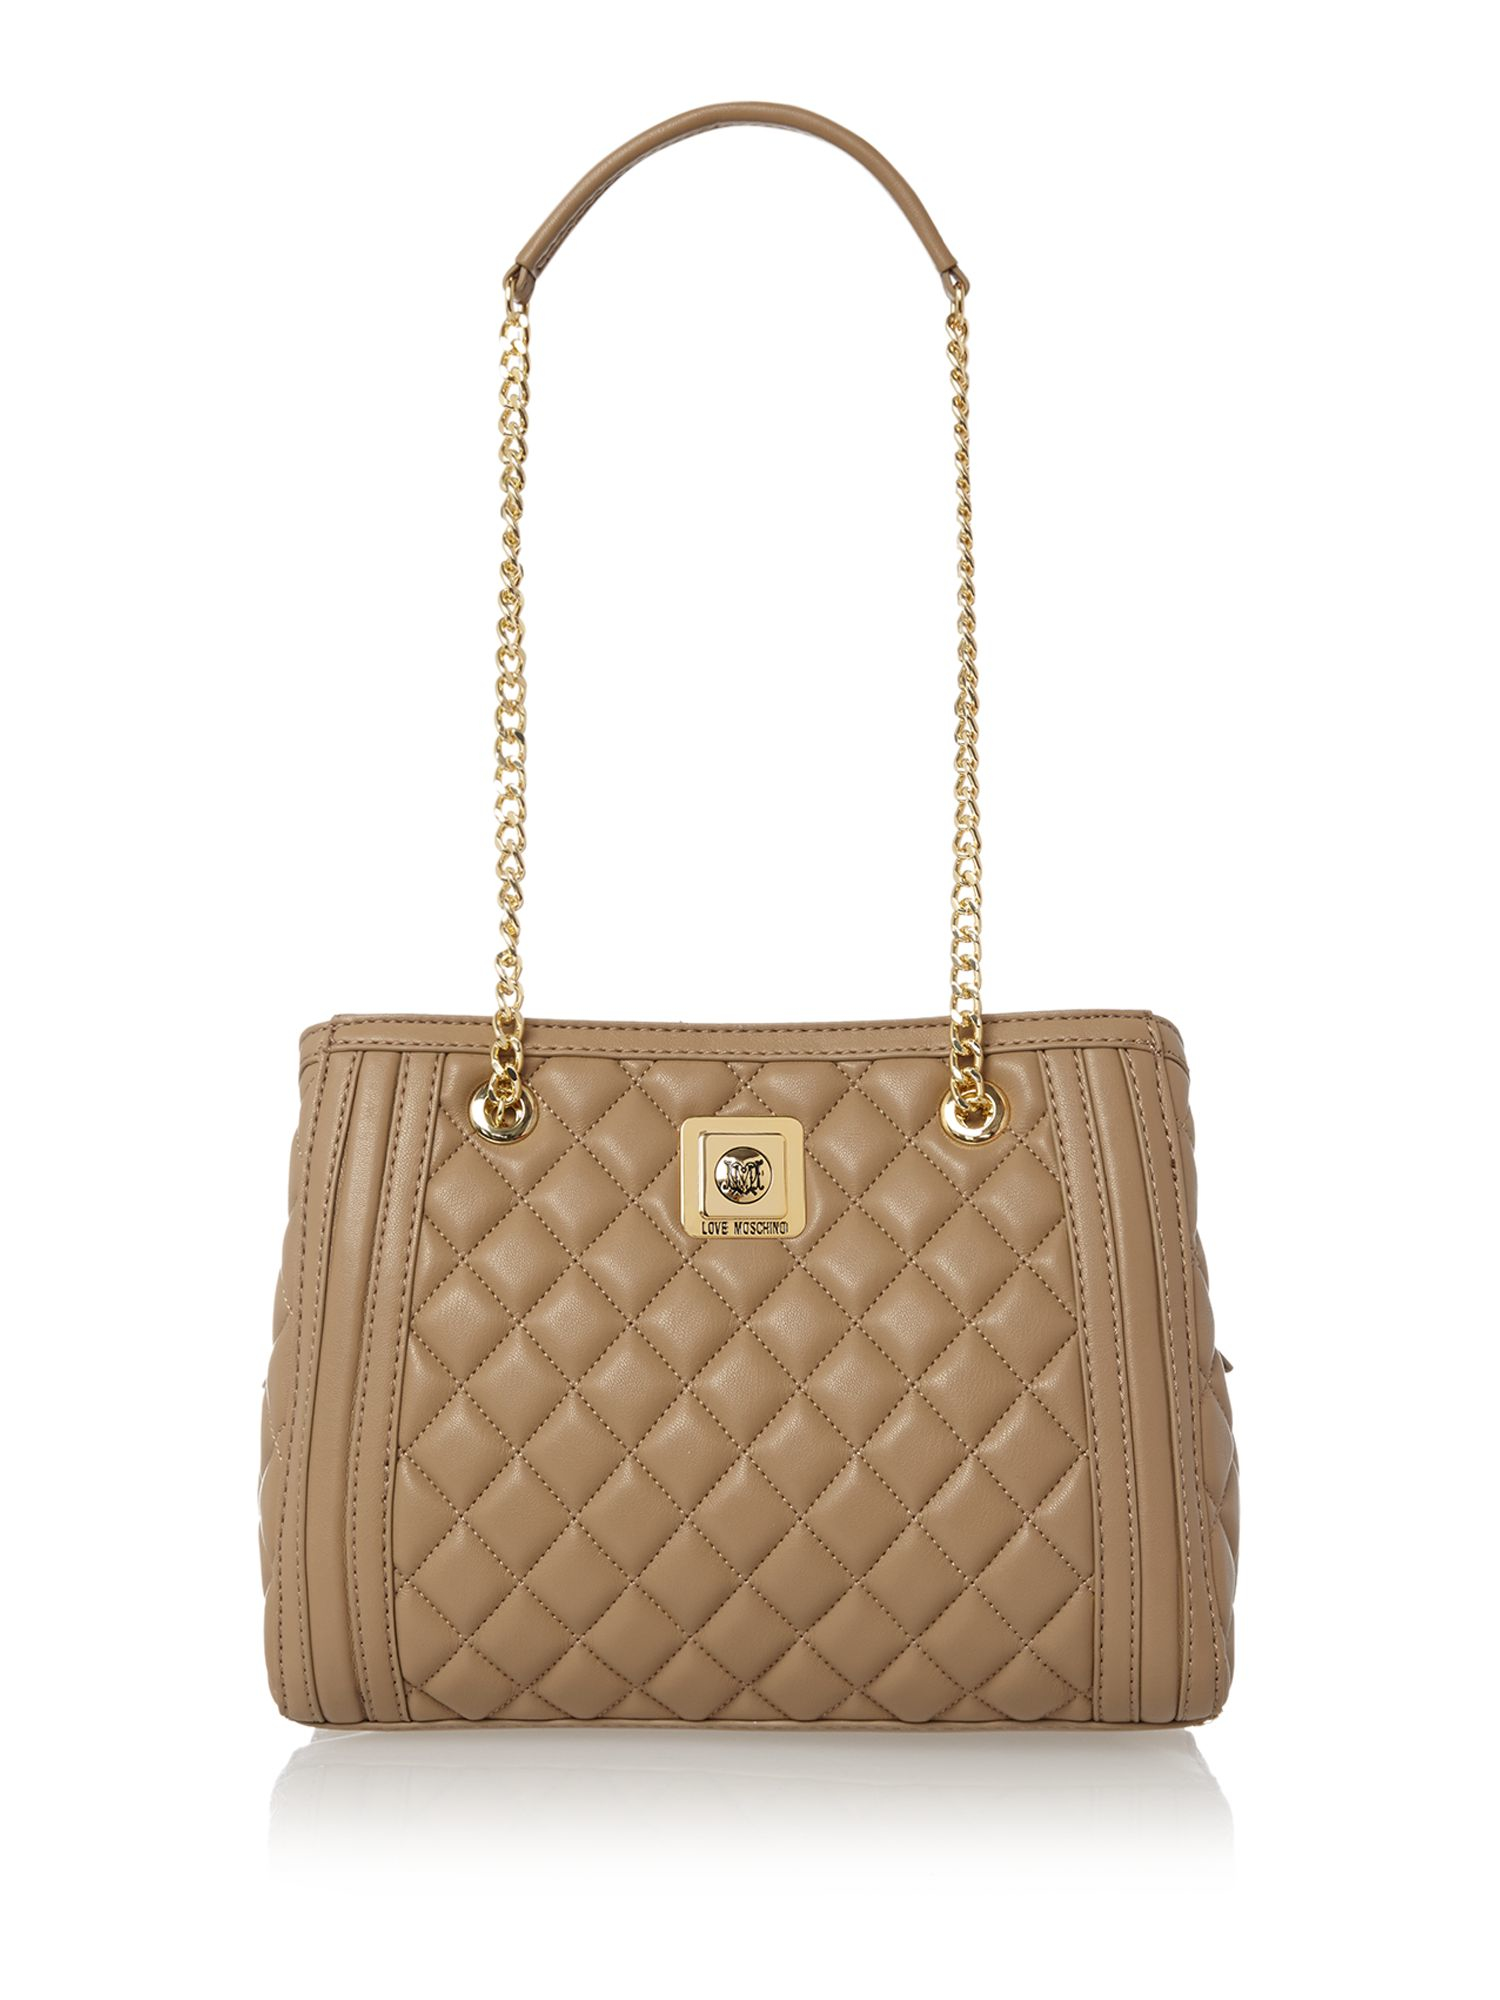 Love Moschino Taupe Medium Quilt Tote Bag in Brown